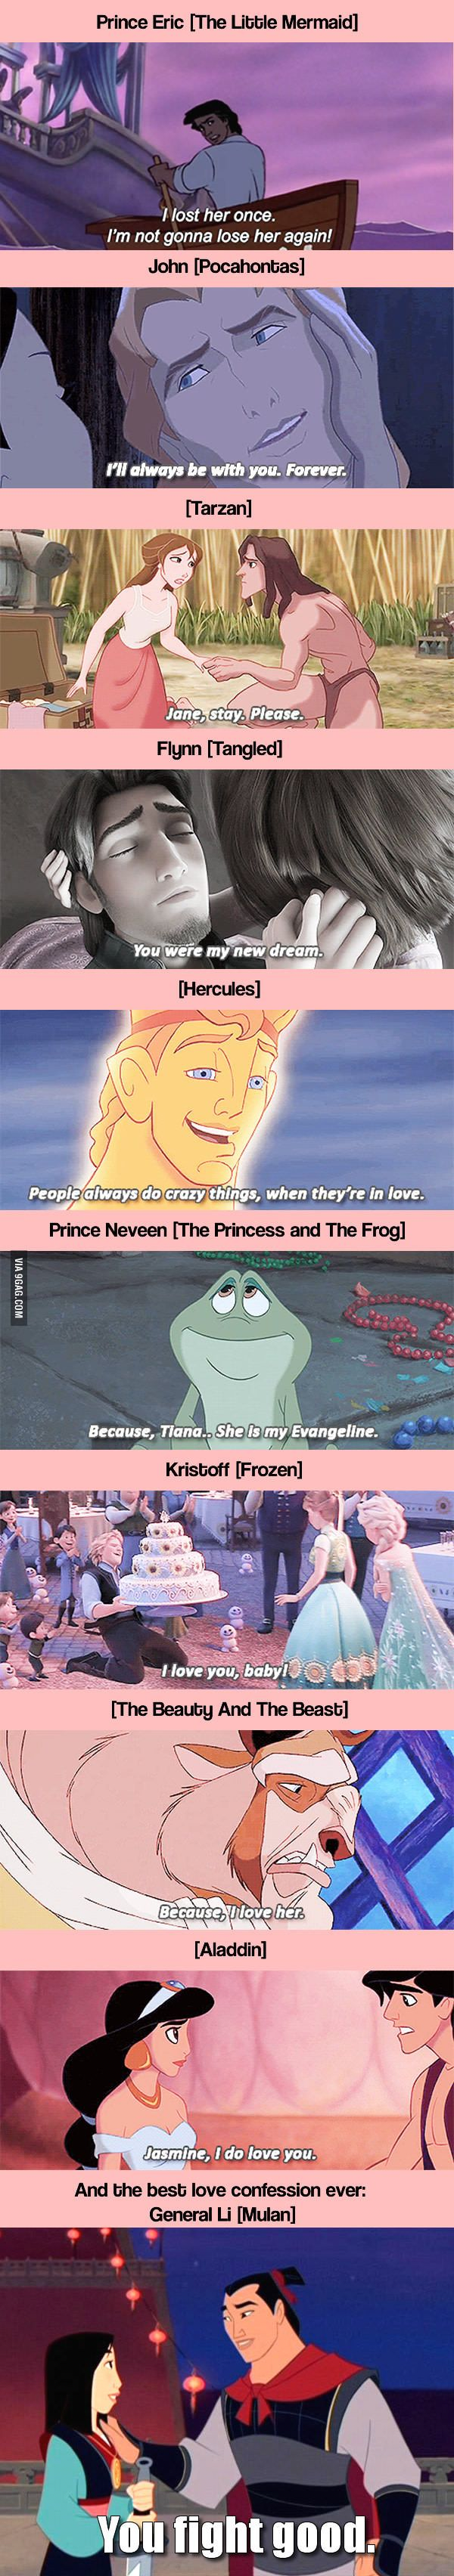 "Flynn and prince Neveen are the best for me <3 How Disney Gentlemen Say ""I Love You""<<My lord! Wow kristof if hilarious!"